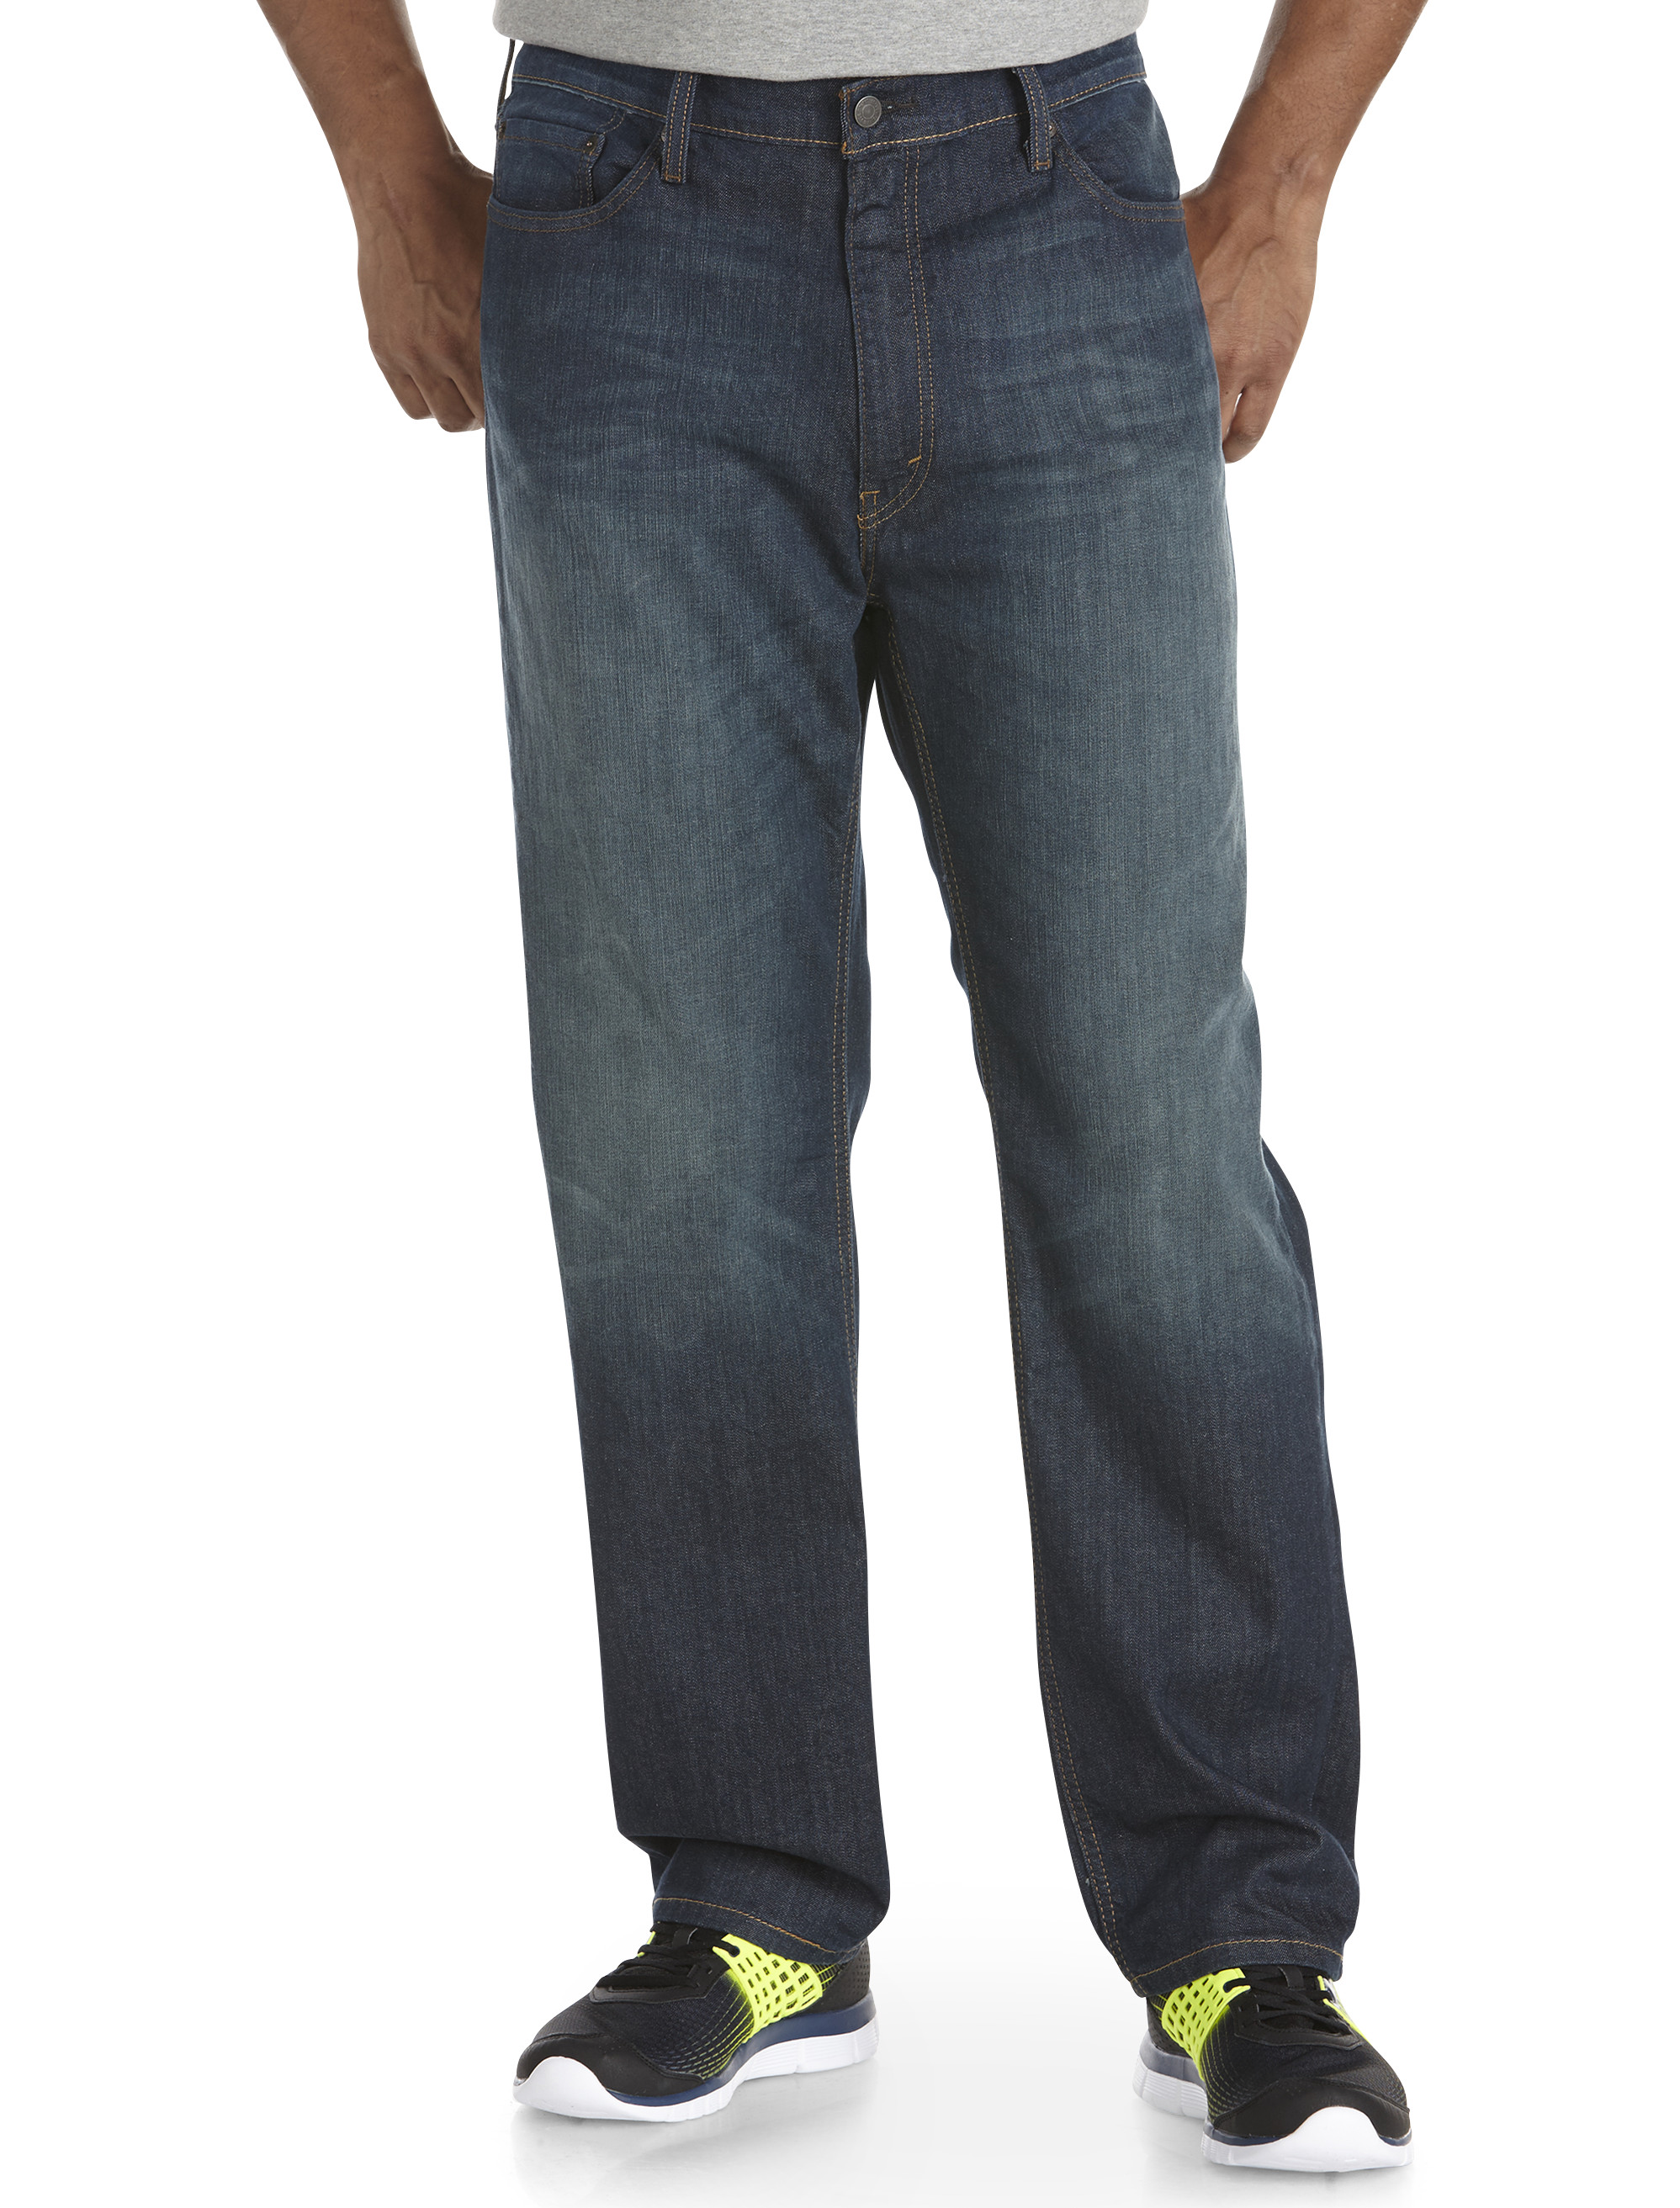 daniel comforter jean pin black most comfortable rise jeans skinny denim the low customers boutique describe mavi as this being mens